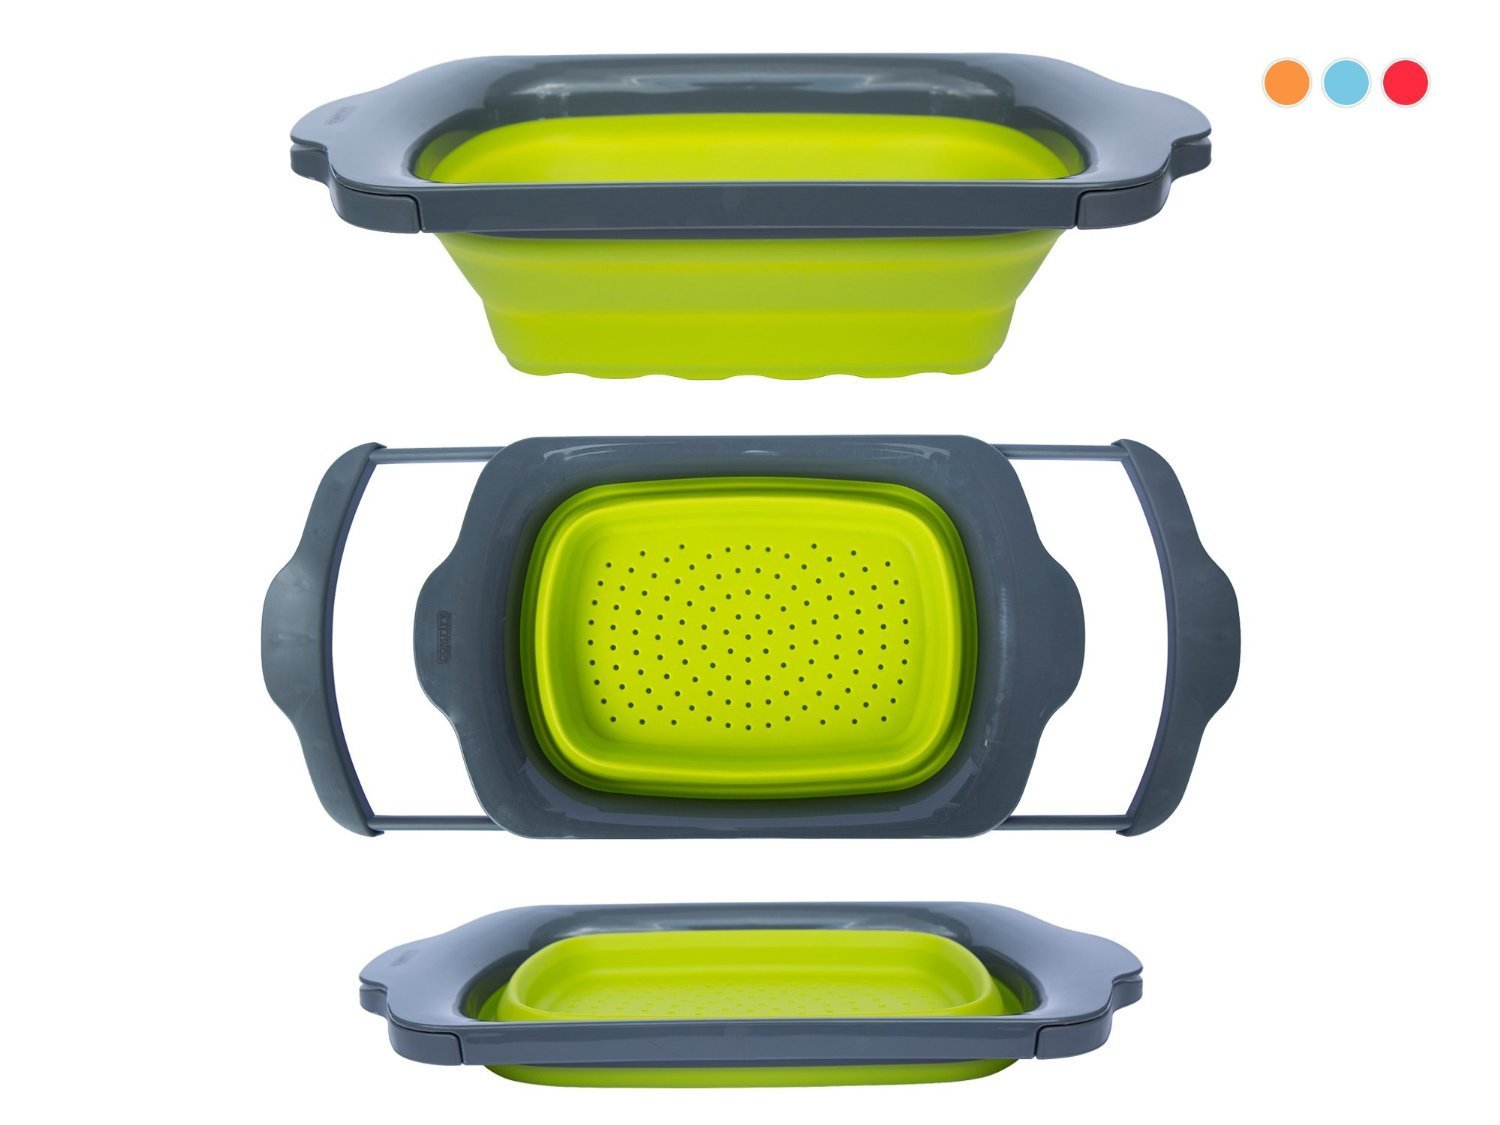 Colander Collapsible Green & Grey Over the Sink Colander with Handles Folding Strainer for Kitchen 6-quart Capacity By Comfify by